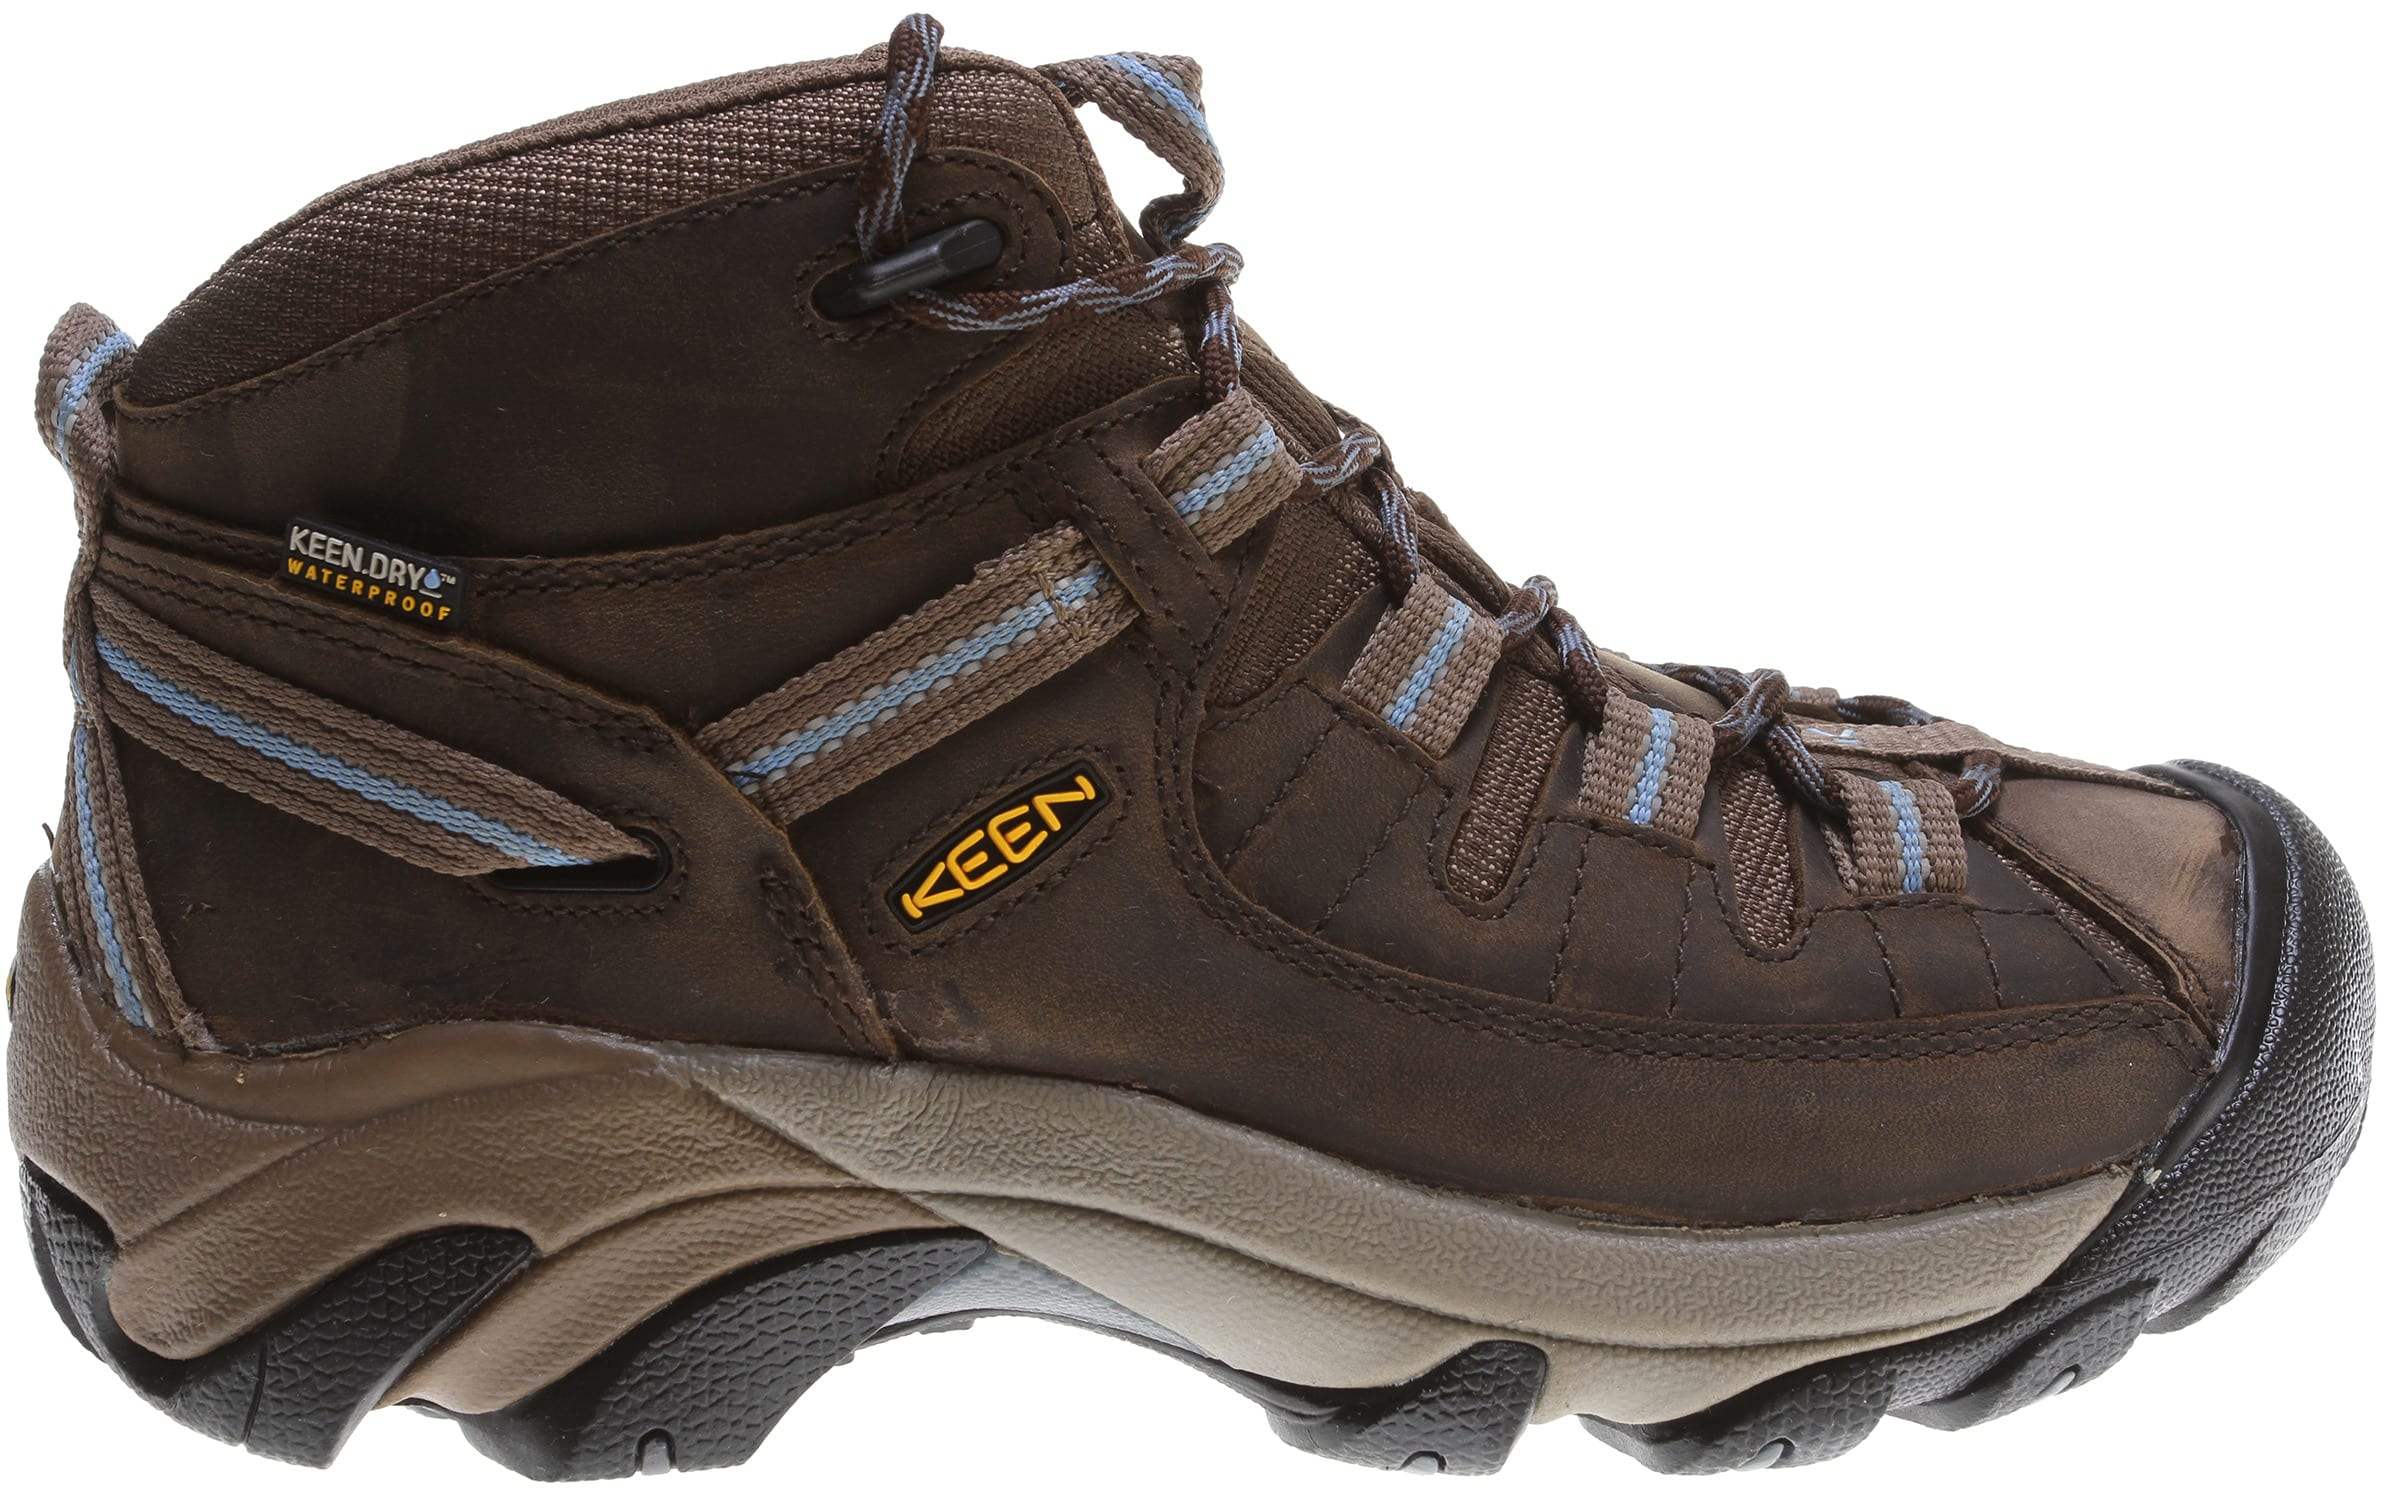 Keen Targhee Ii Mid Hiking Shoe Women